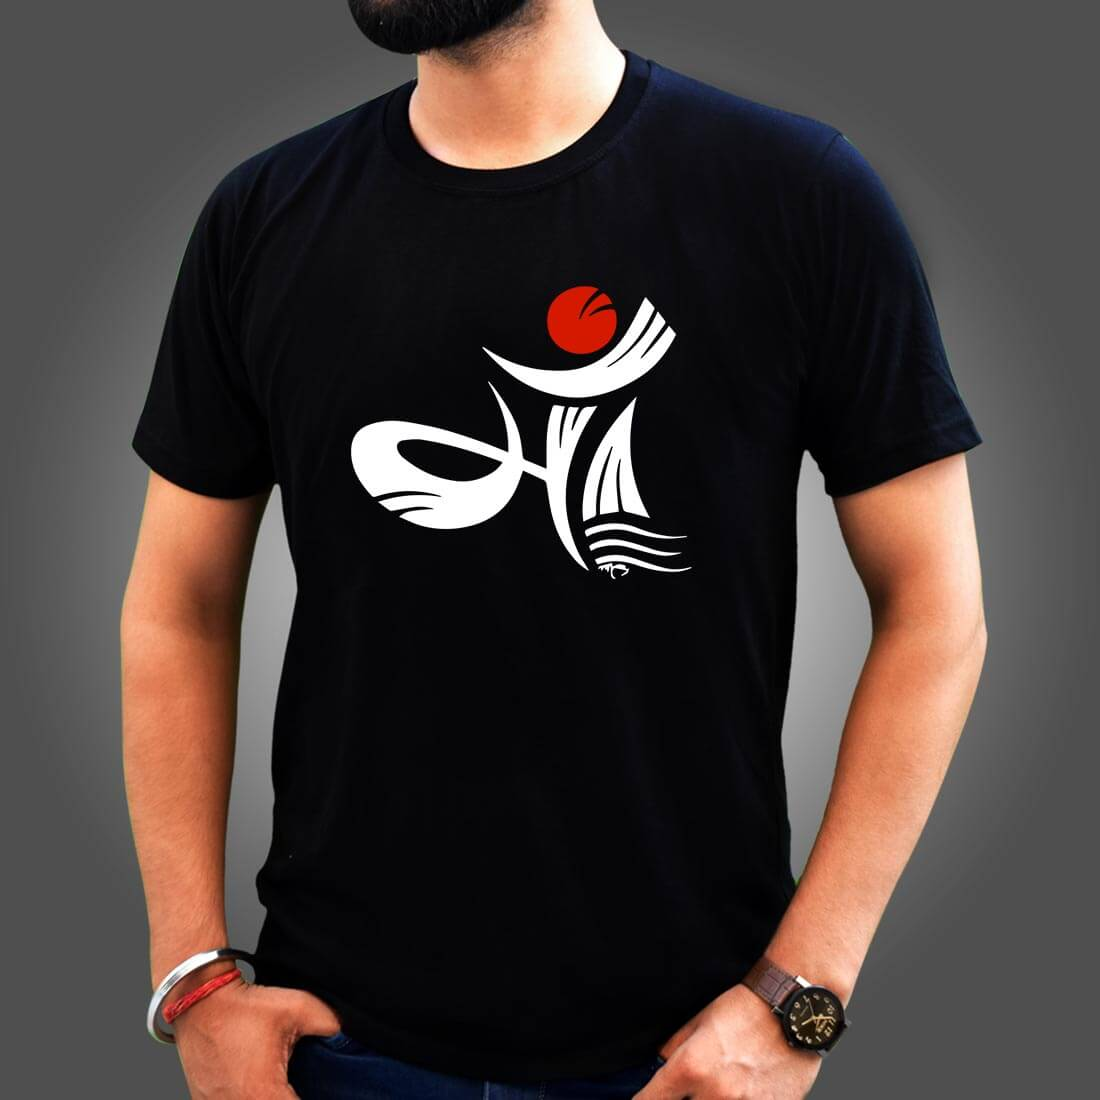 Maa Freehand Drawing Printed Black Round Neck T Shirt